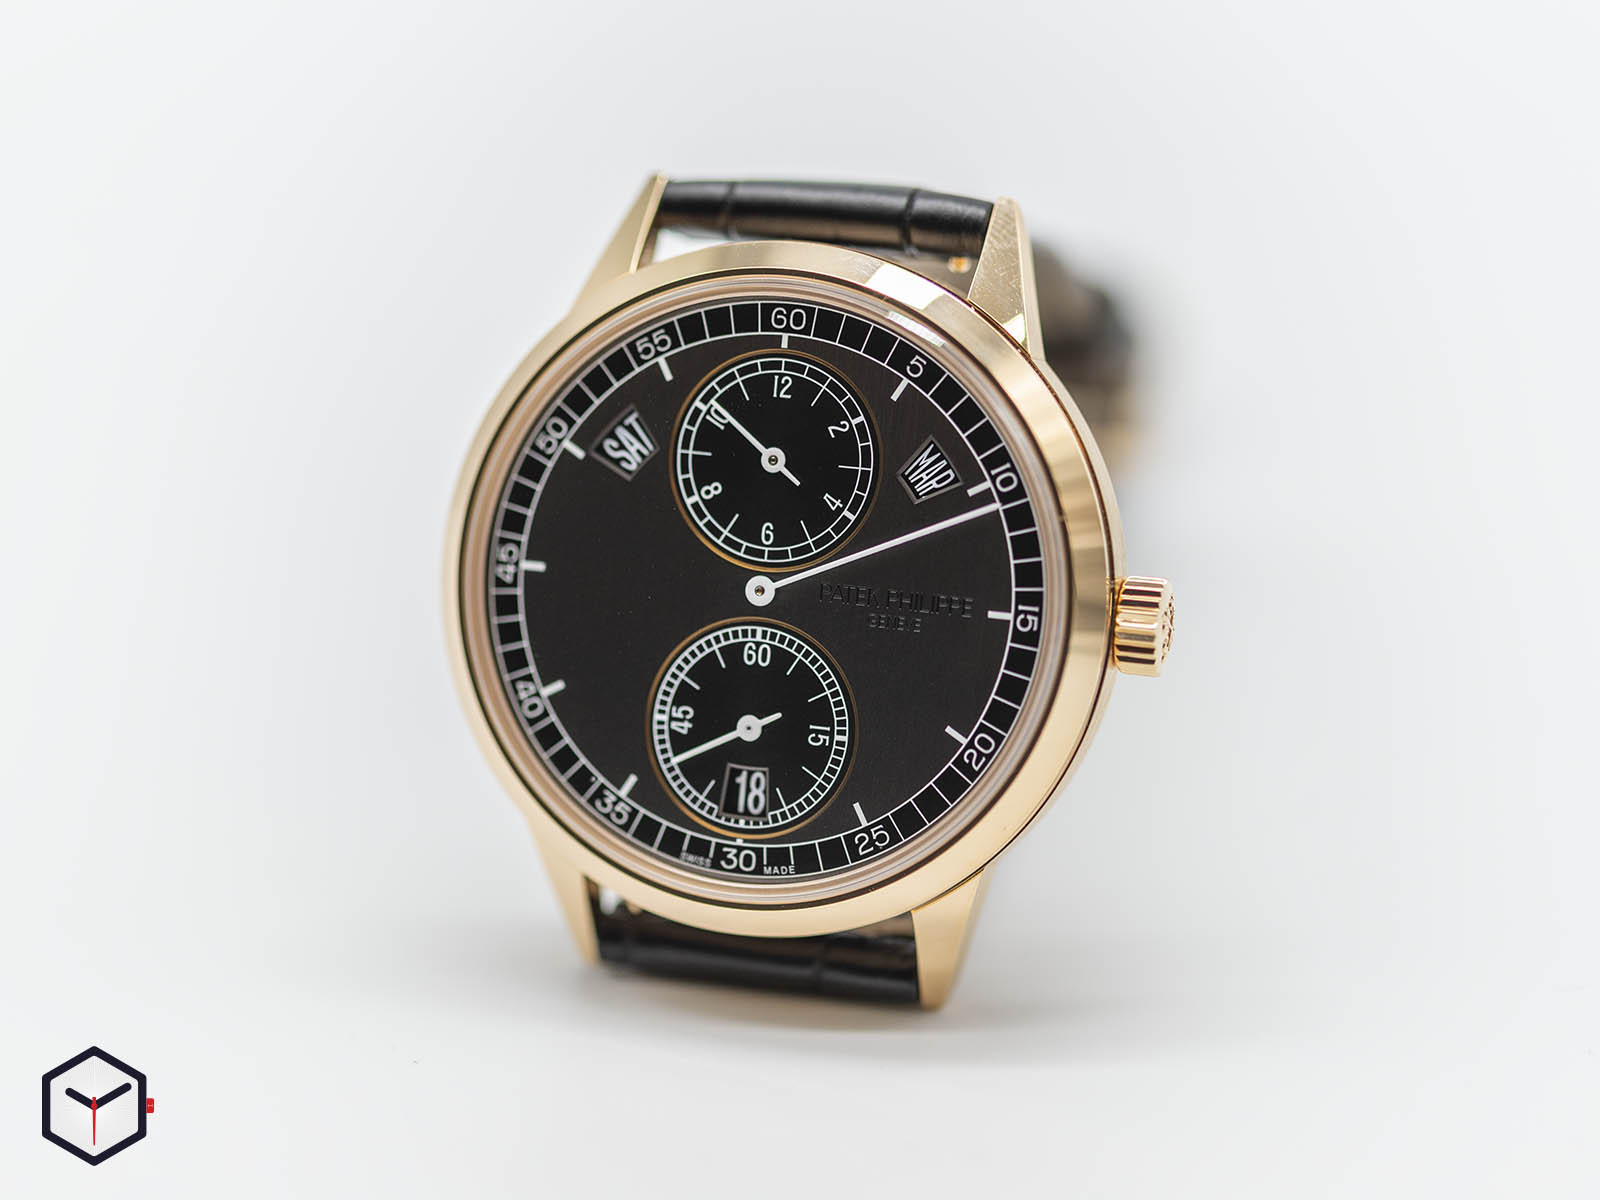 5235-50r-001-patek-philippe-5235-50r-annual-calendar-regulator-2.jpg